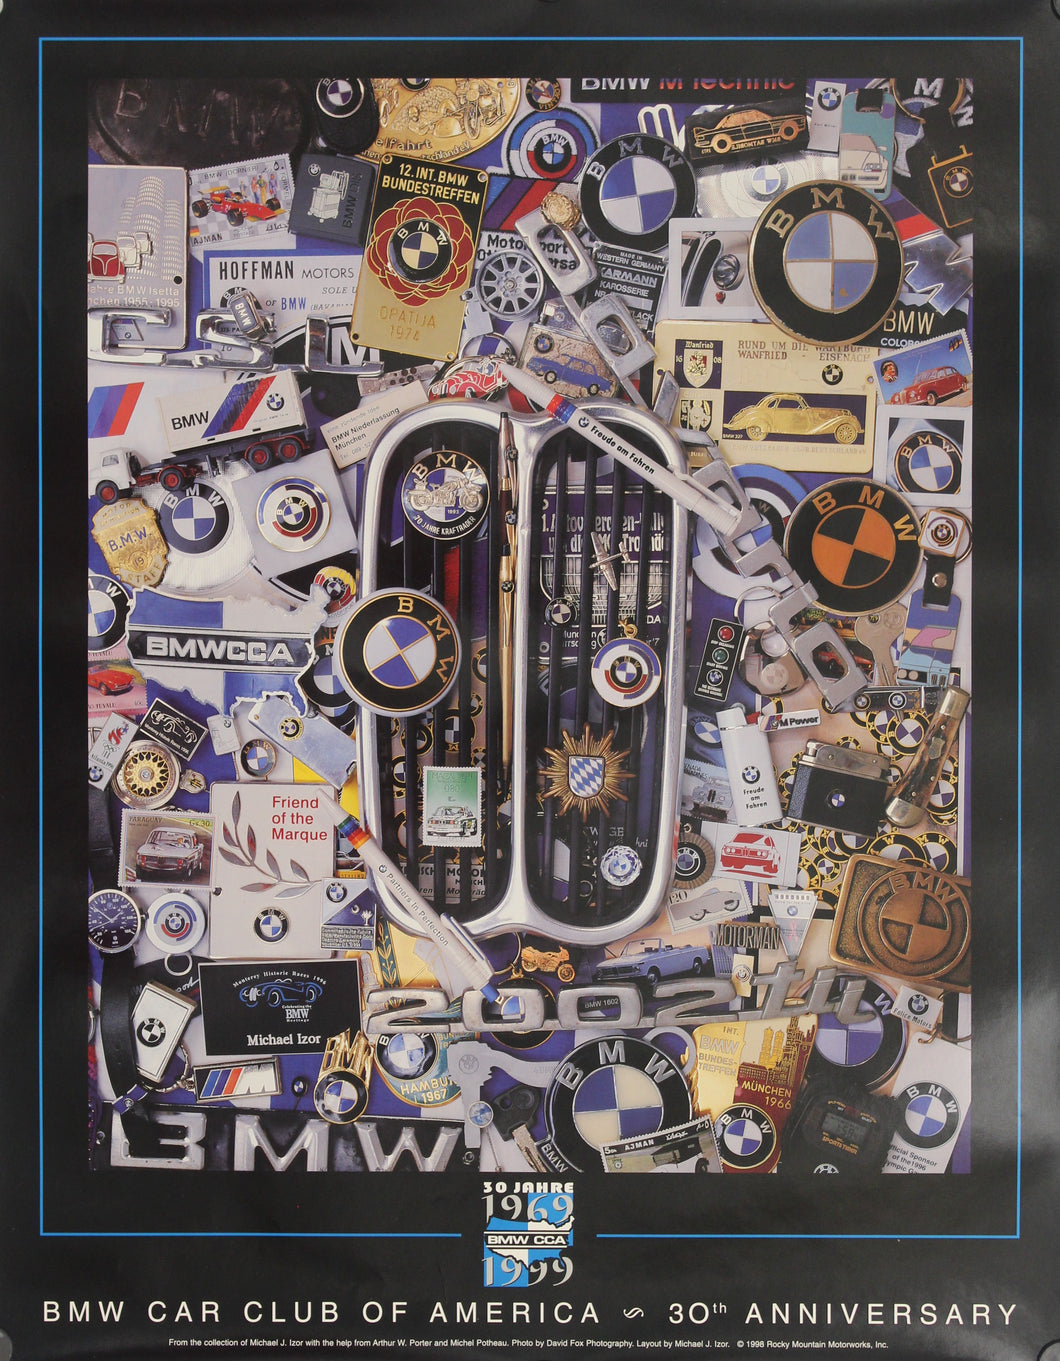 Poster-BMW Car Club of America 30th Anniversary 1069 to 1999